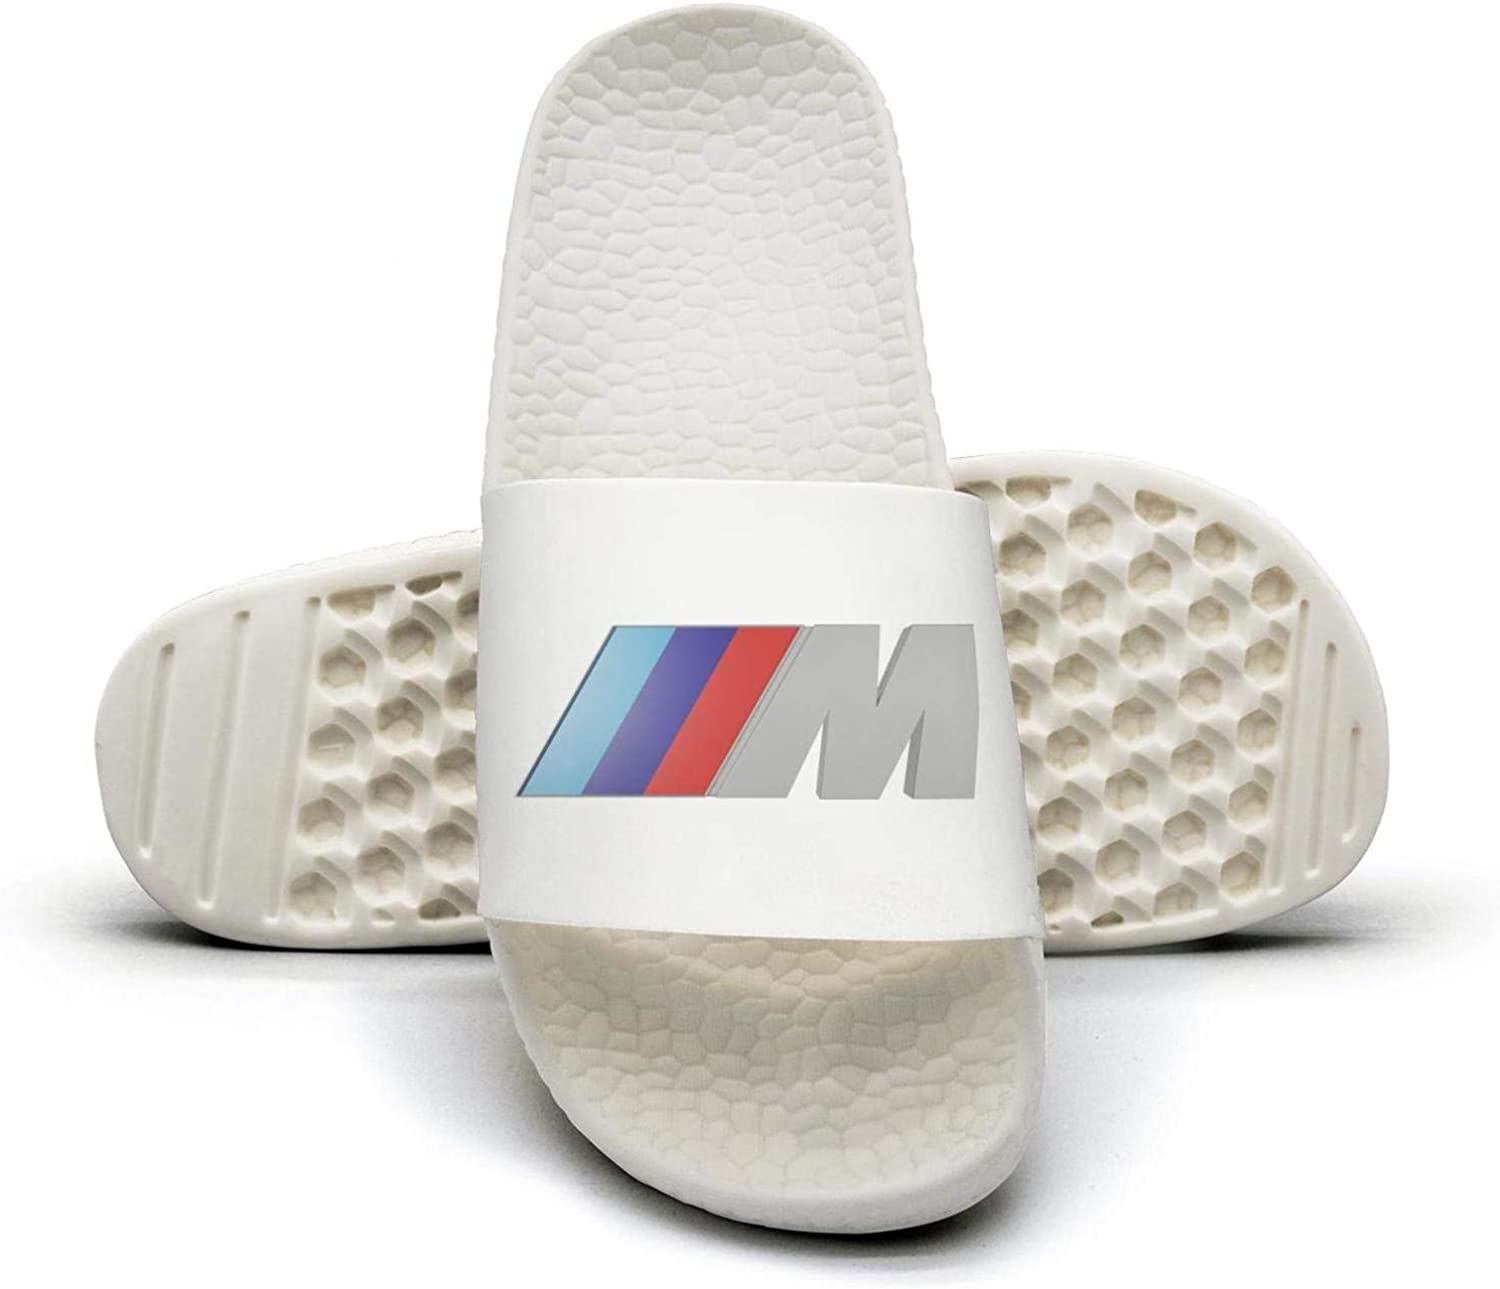 EIGKASL Printed Non-Slip Slippers Slides flip Flop Sandals BMW-Logo-m-Symbol-Summer Indoors for Womens